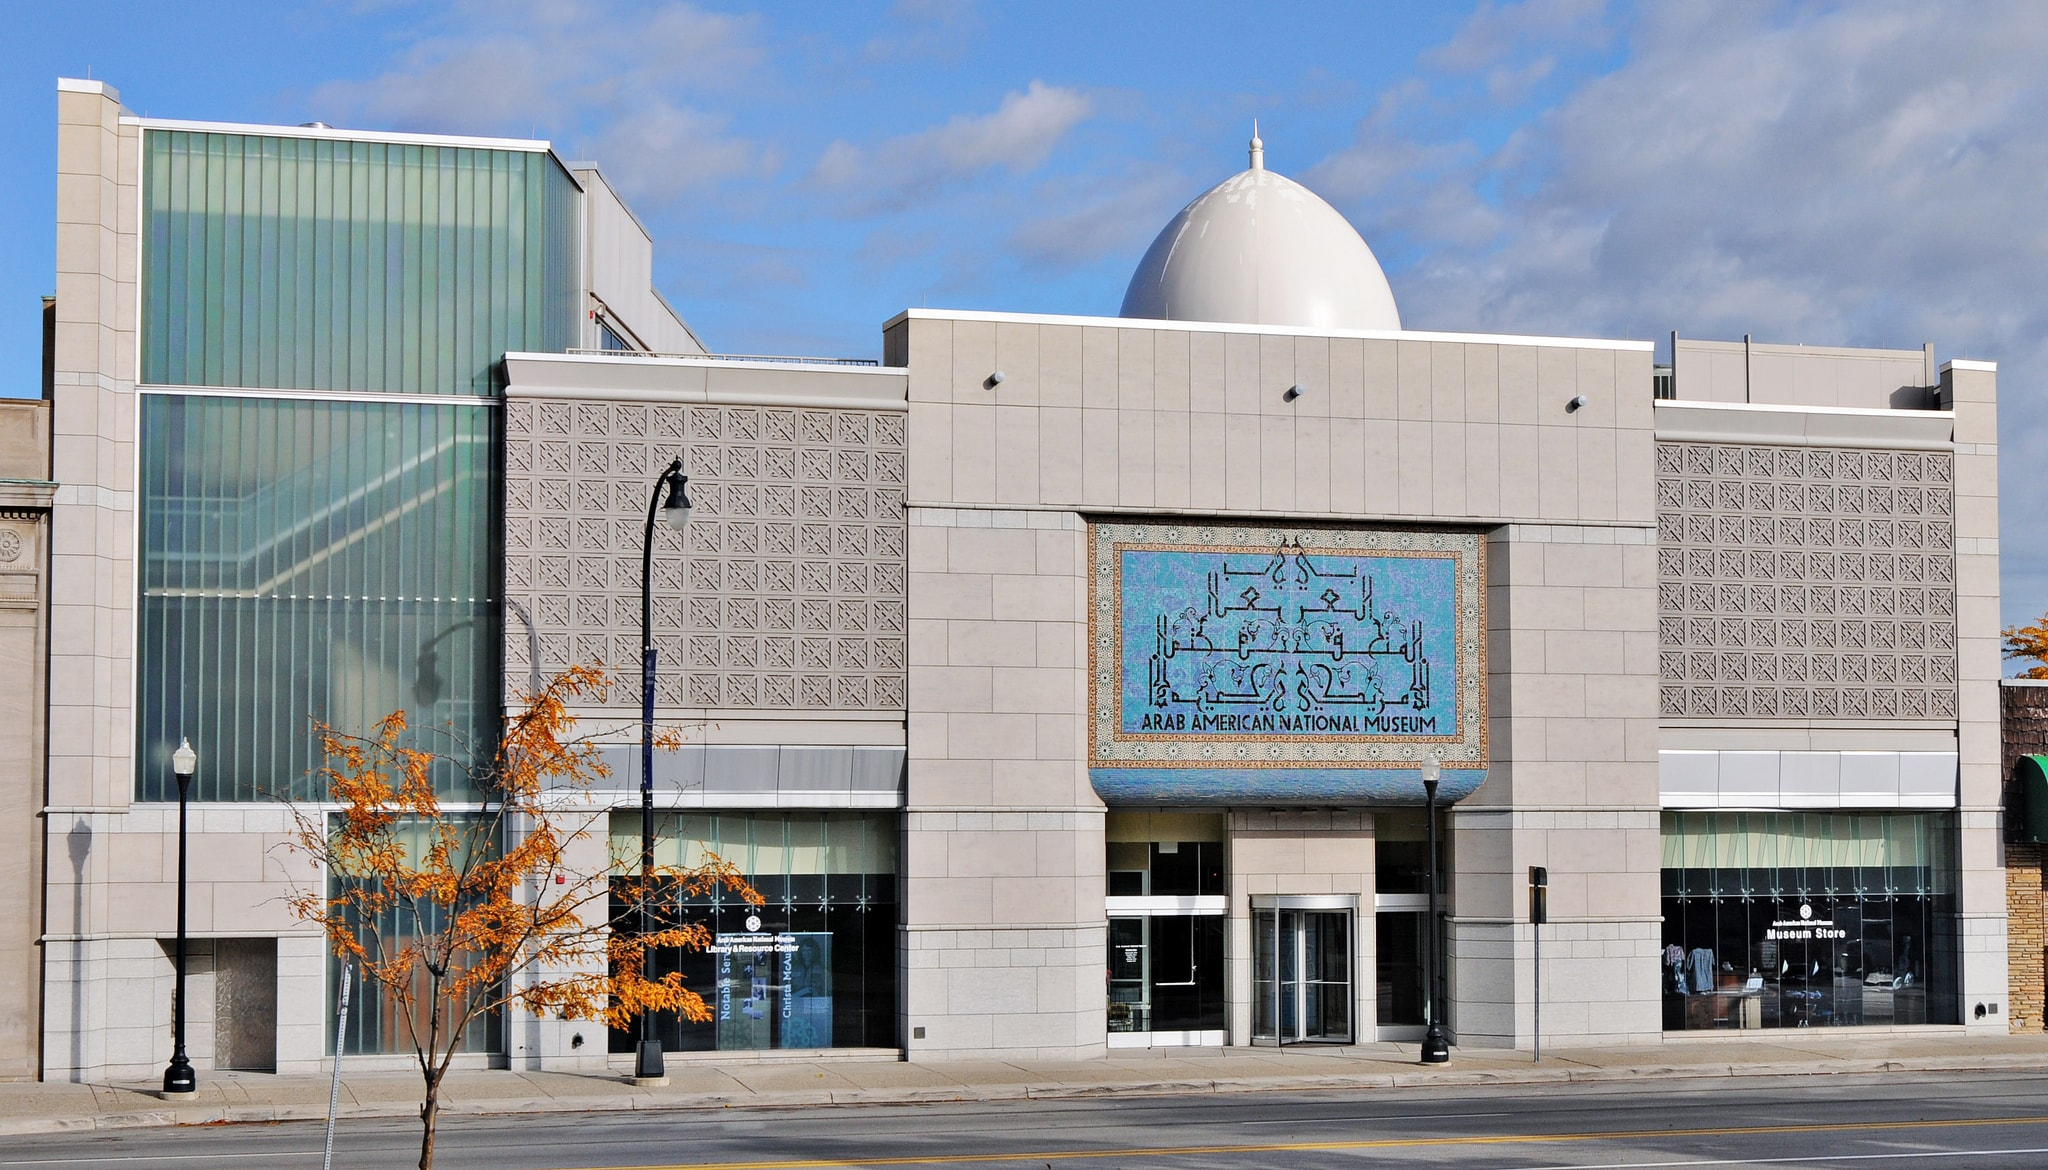 Arab American National Museum | © John S. and James L. Knight Foundation/Flickr